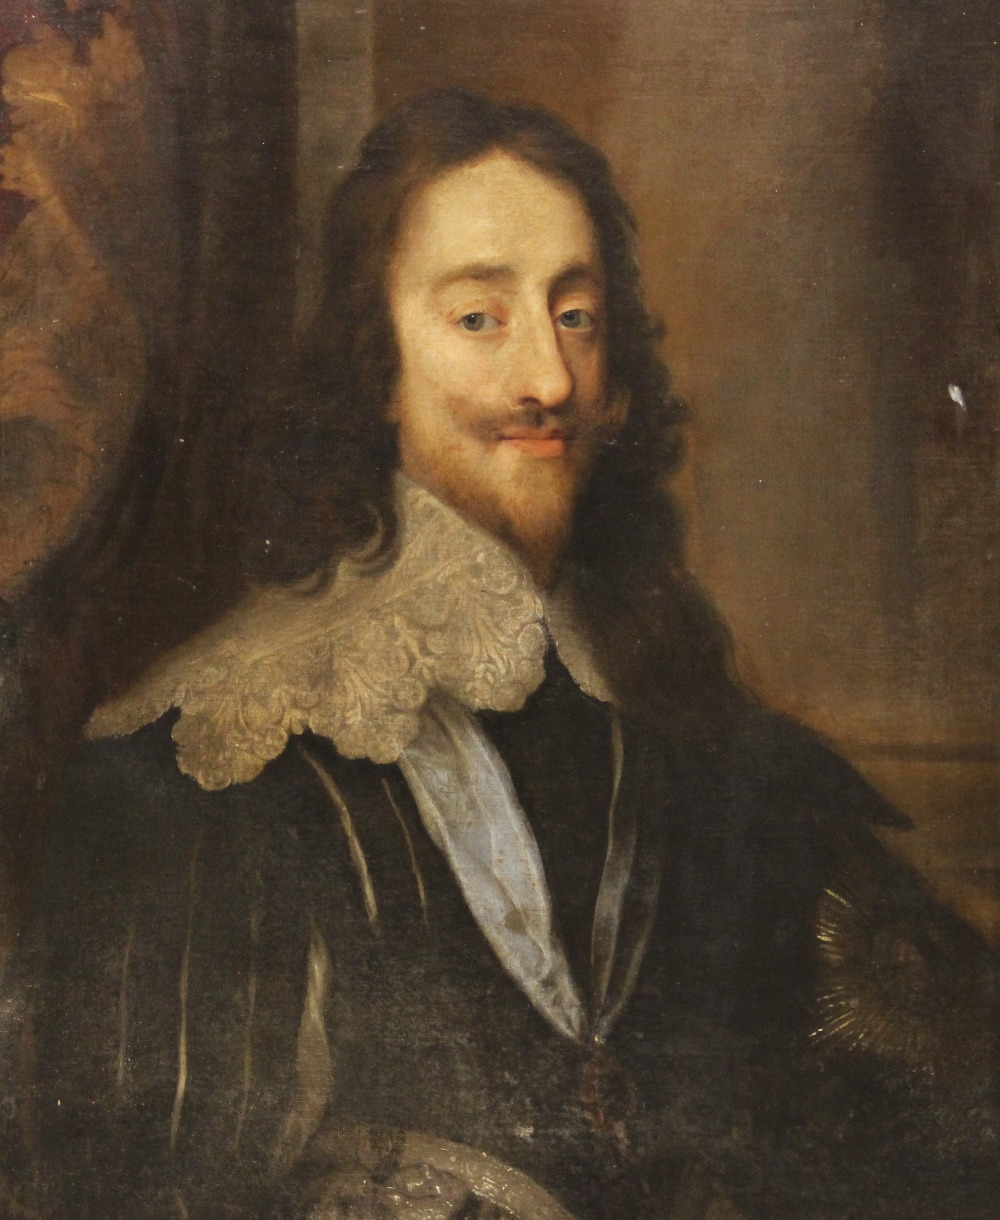 Follower of Sir Antony Van Dyck (1599-1641), Portrait of Charles I, Head and shoulders, with lace